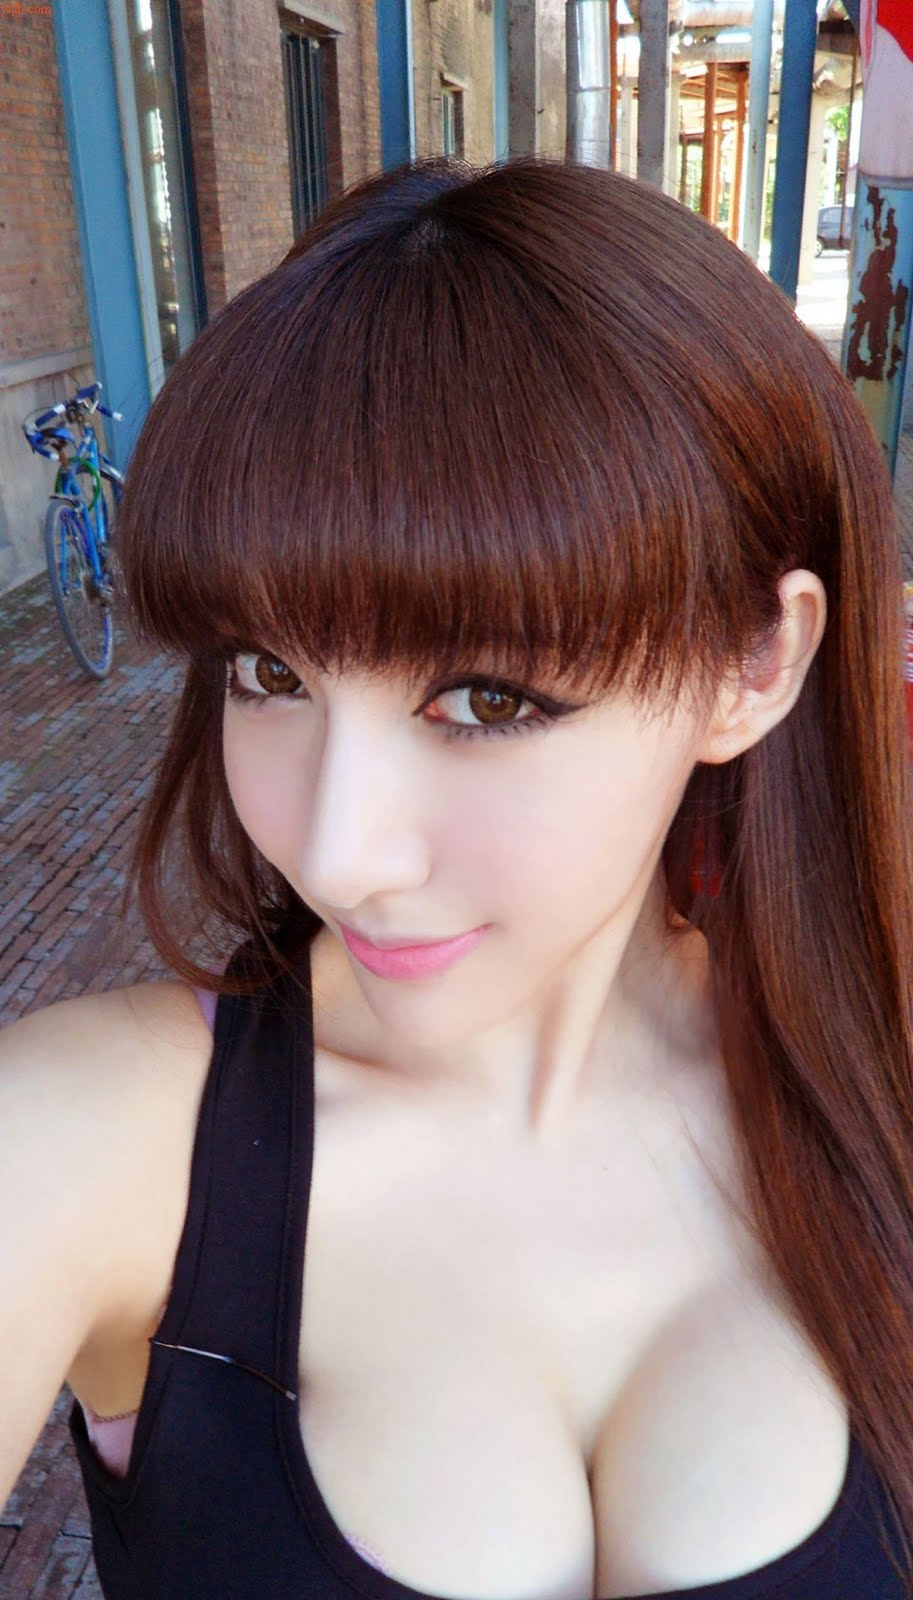 good thunder asian girl personals Good thunder's best 100% free asian online dating site meet cute asian singles in minnesota with our free good thunder asian dating service loads of single asian men and women are looking for their match on the internet's best website for meeting asians in good thunder.